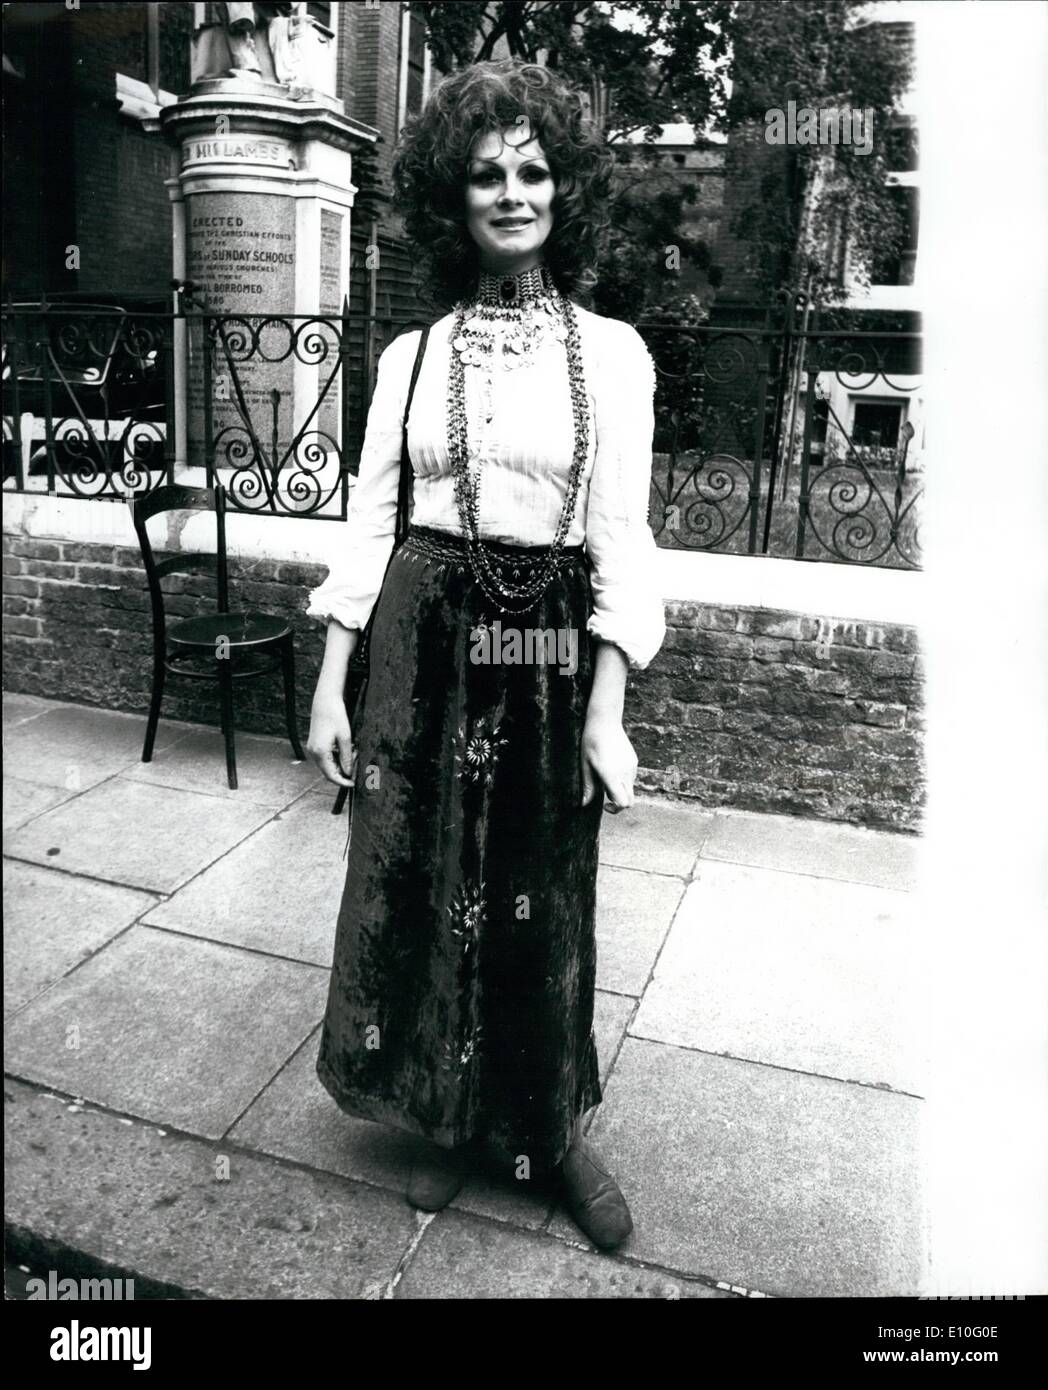 Oct. 10, 1972 - Lady Churchill attends the wedding of her grandaugther Arabella.: Arabella Churchill, 22-year-old grandaughter of Sir Winston and Lady Churchill, was married today to 23-year-old Scots schoolteacher James Barton, whose father is the headmaster of St. Thomas Moore School in Sournemouth. The ceremony took place at the Essex Unitarian church, Kensington, and Lady Churchill was present. Photo shows:- April Ashley pictured after attending the wedding. - Stock Image